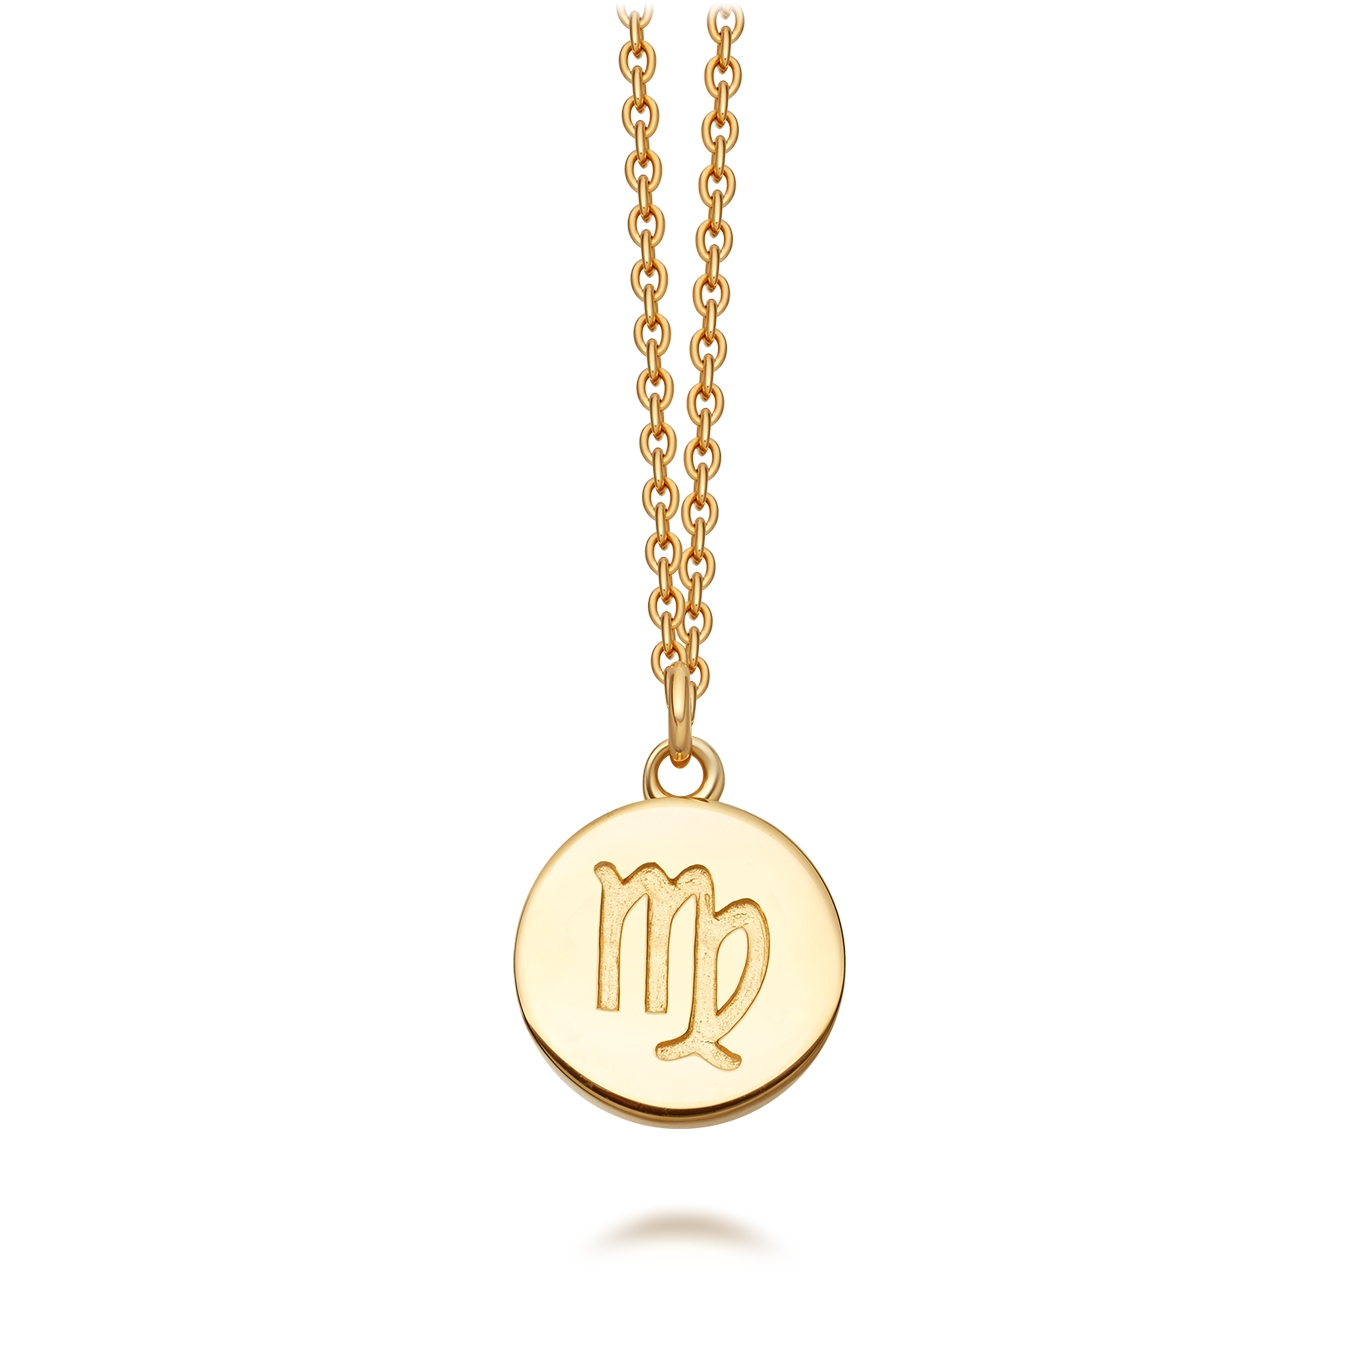 Gold Virgo Zodiac Biography Pendant Necklace